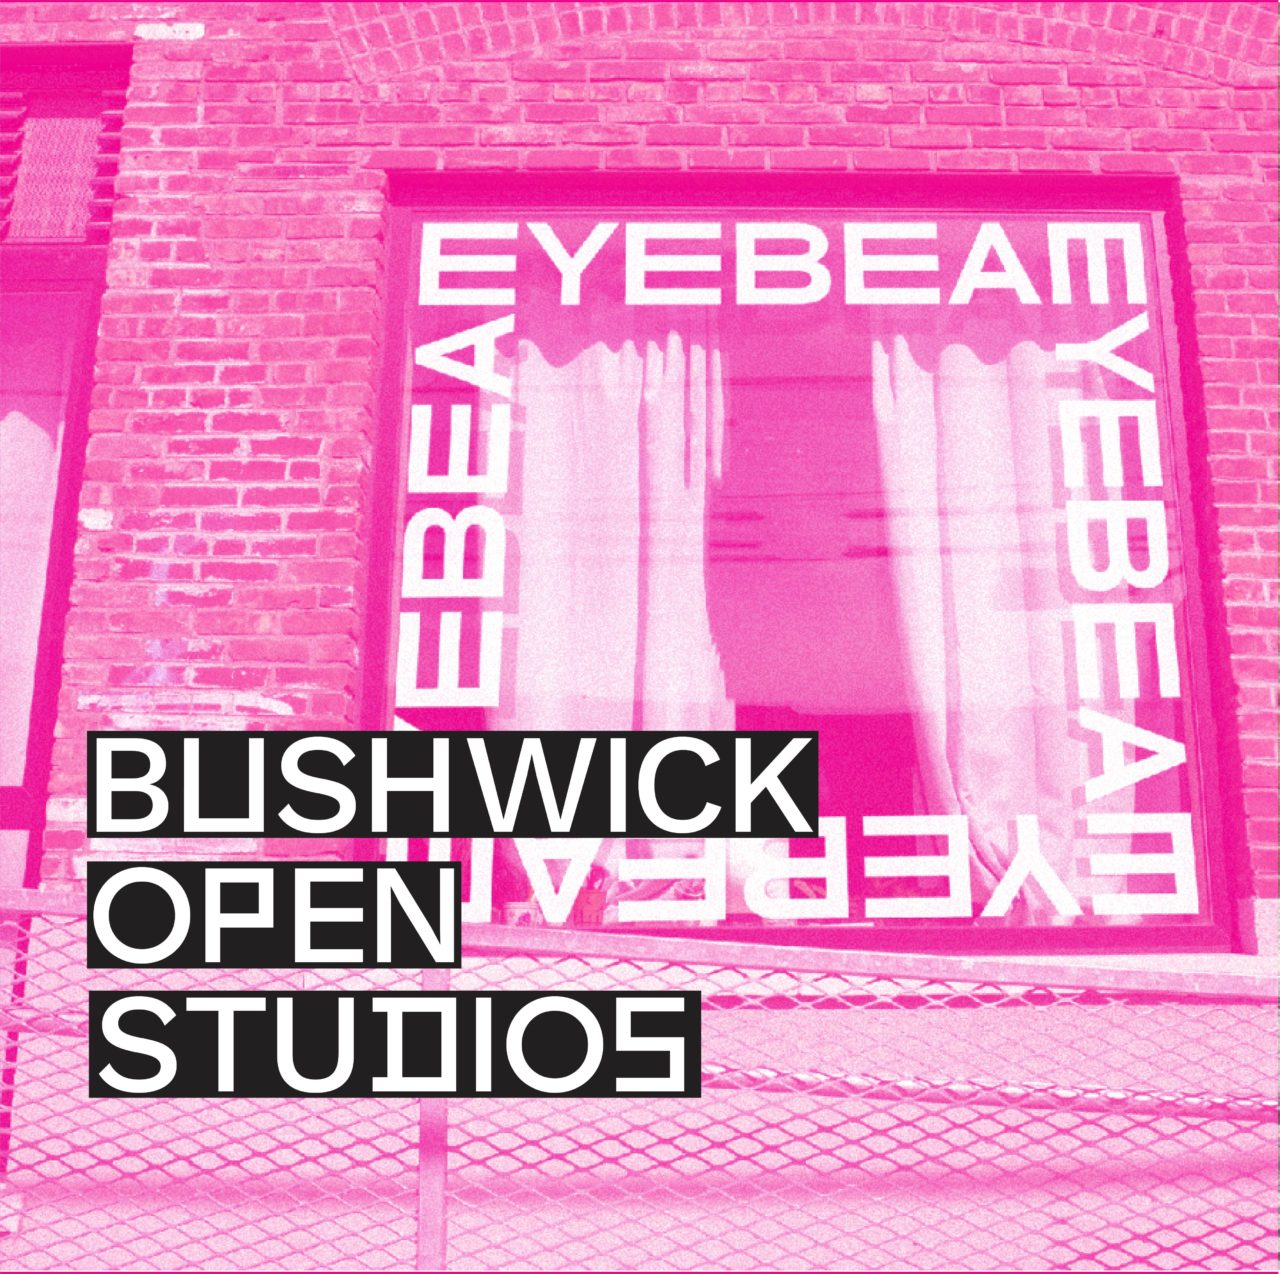 Photo of Eyebeam tinted in pink with text that reads,